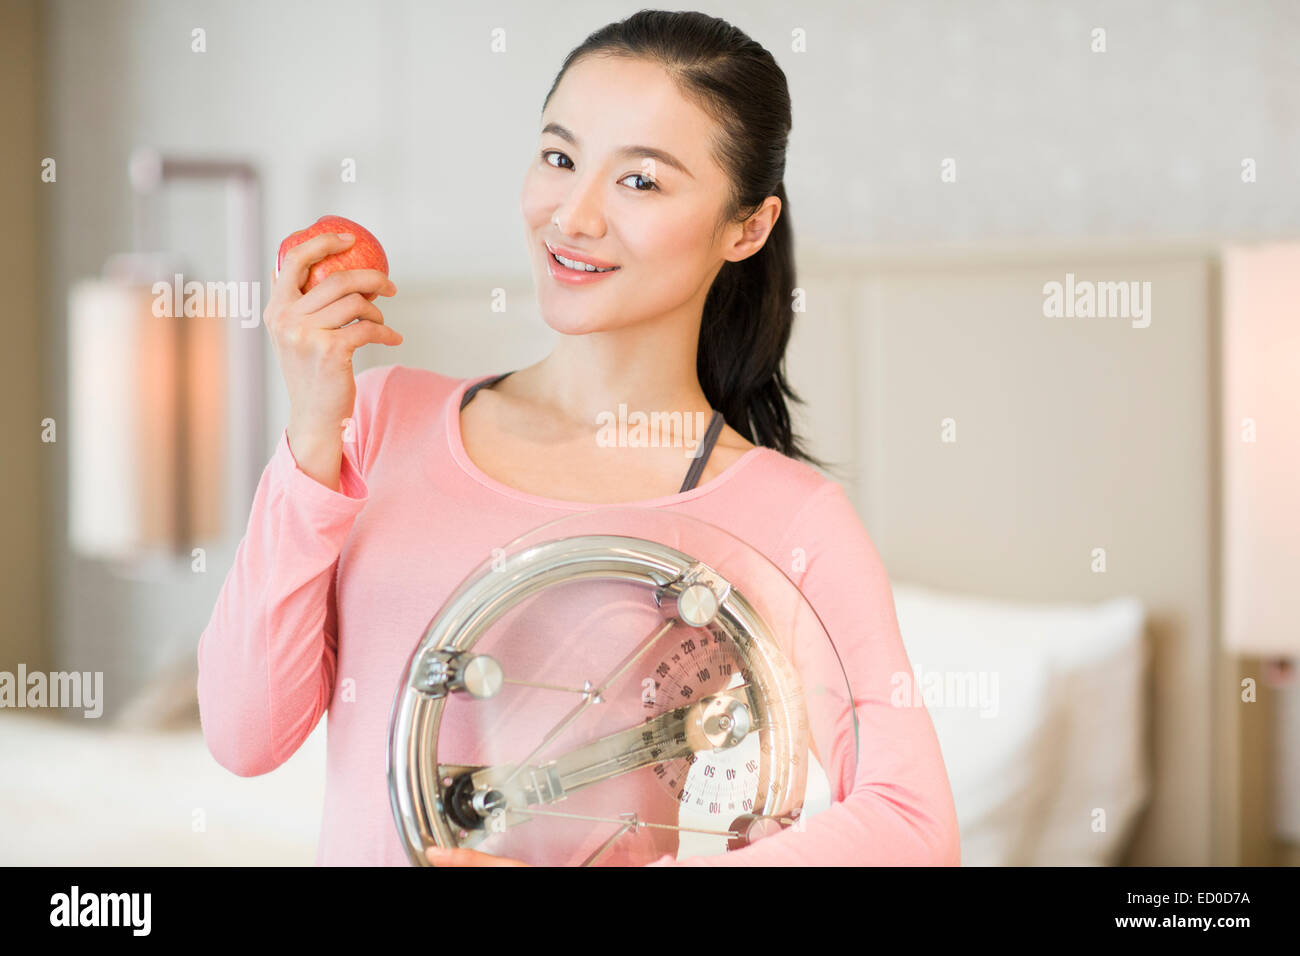 Happy young woman holding weight scale and apple - Stock Image